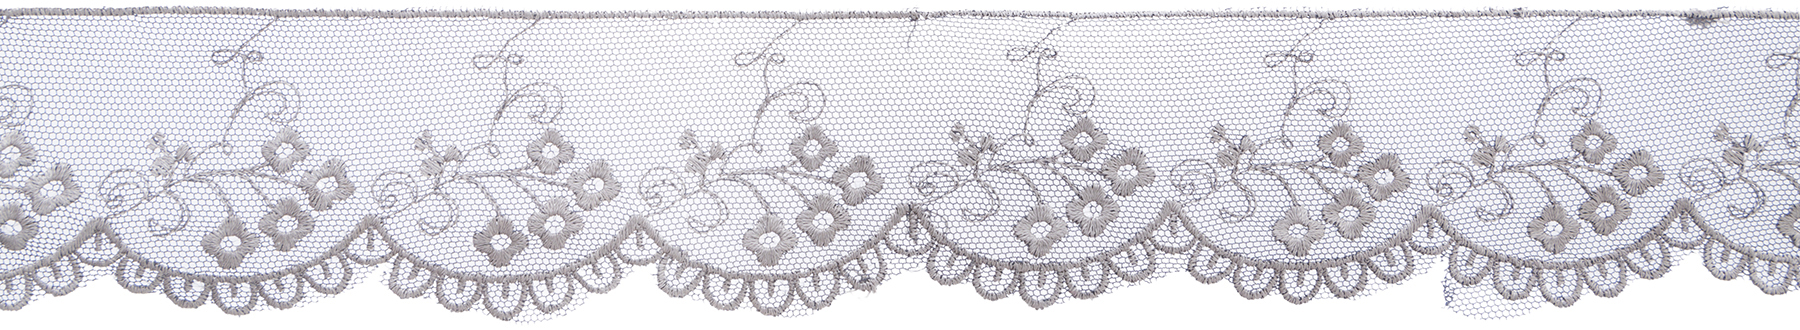 Wrights Embroidered Scalloped Mesh Lace Trim 2\u0027\u0027x10 yds-Light Gray